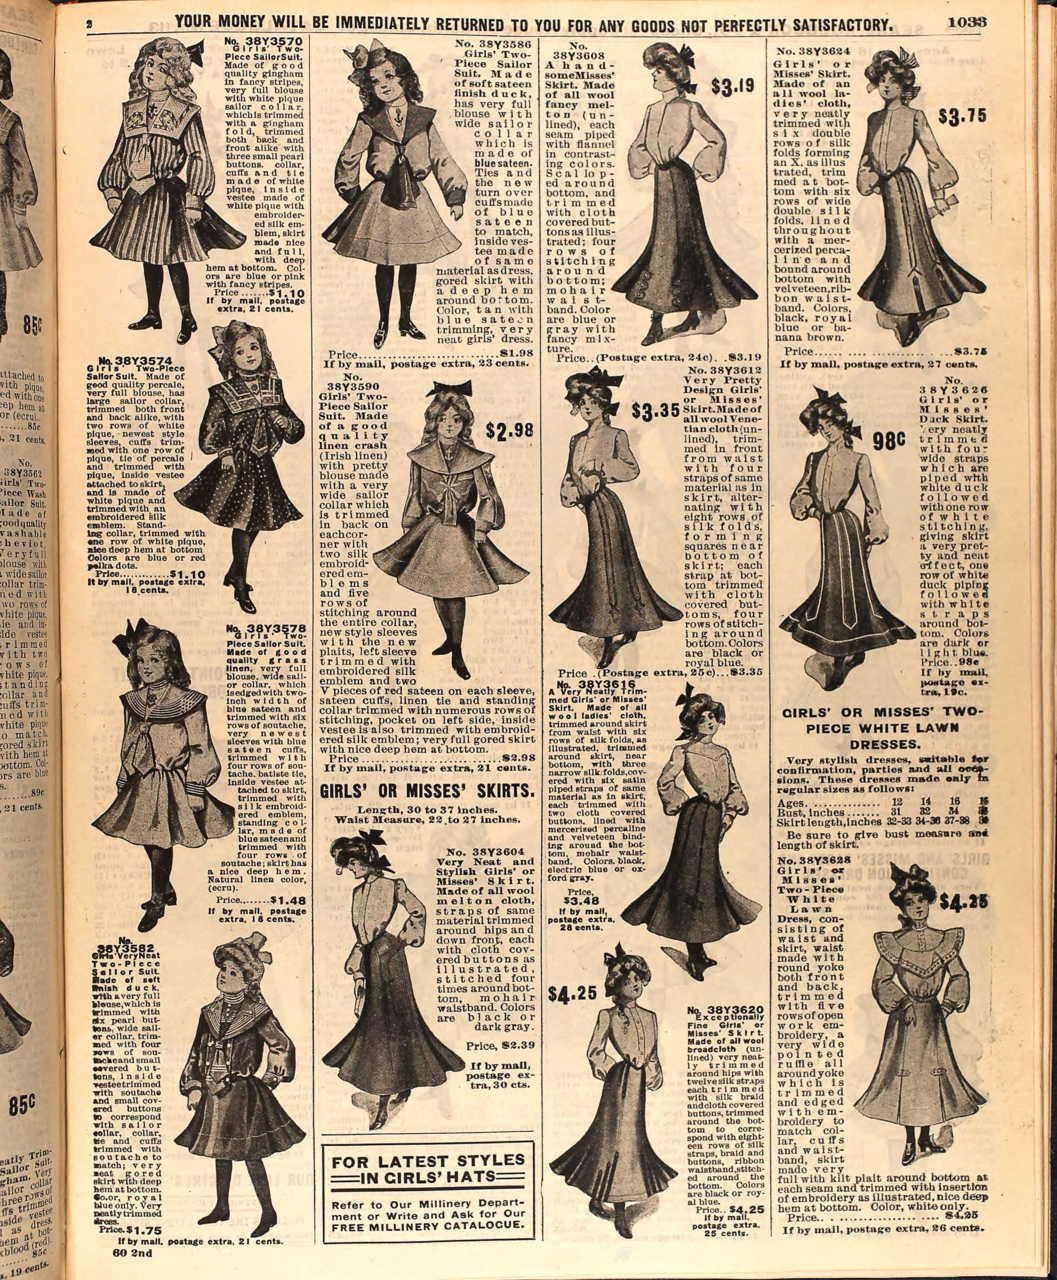 A page of girl's fashion from the Sears Catalog, Spring 1904.